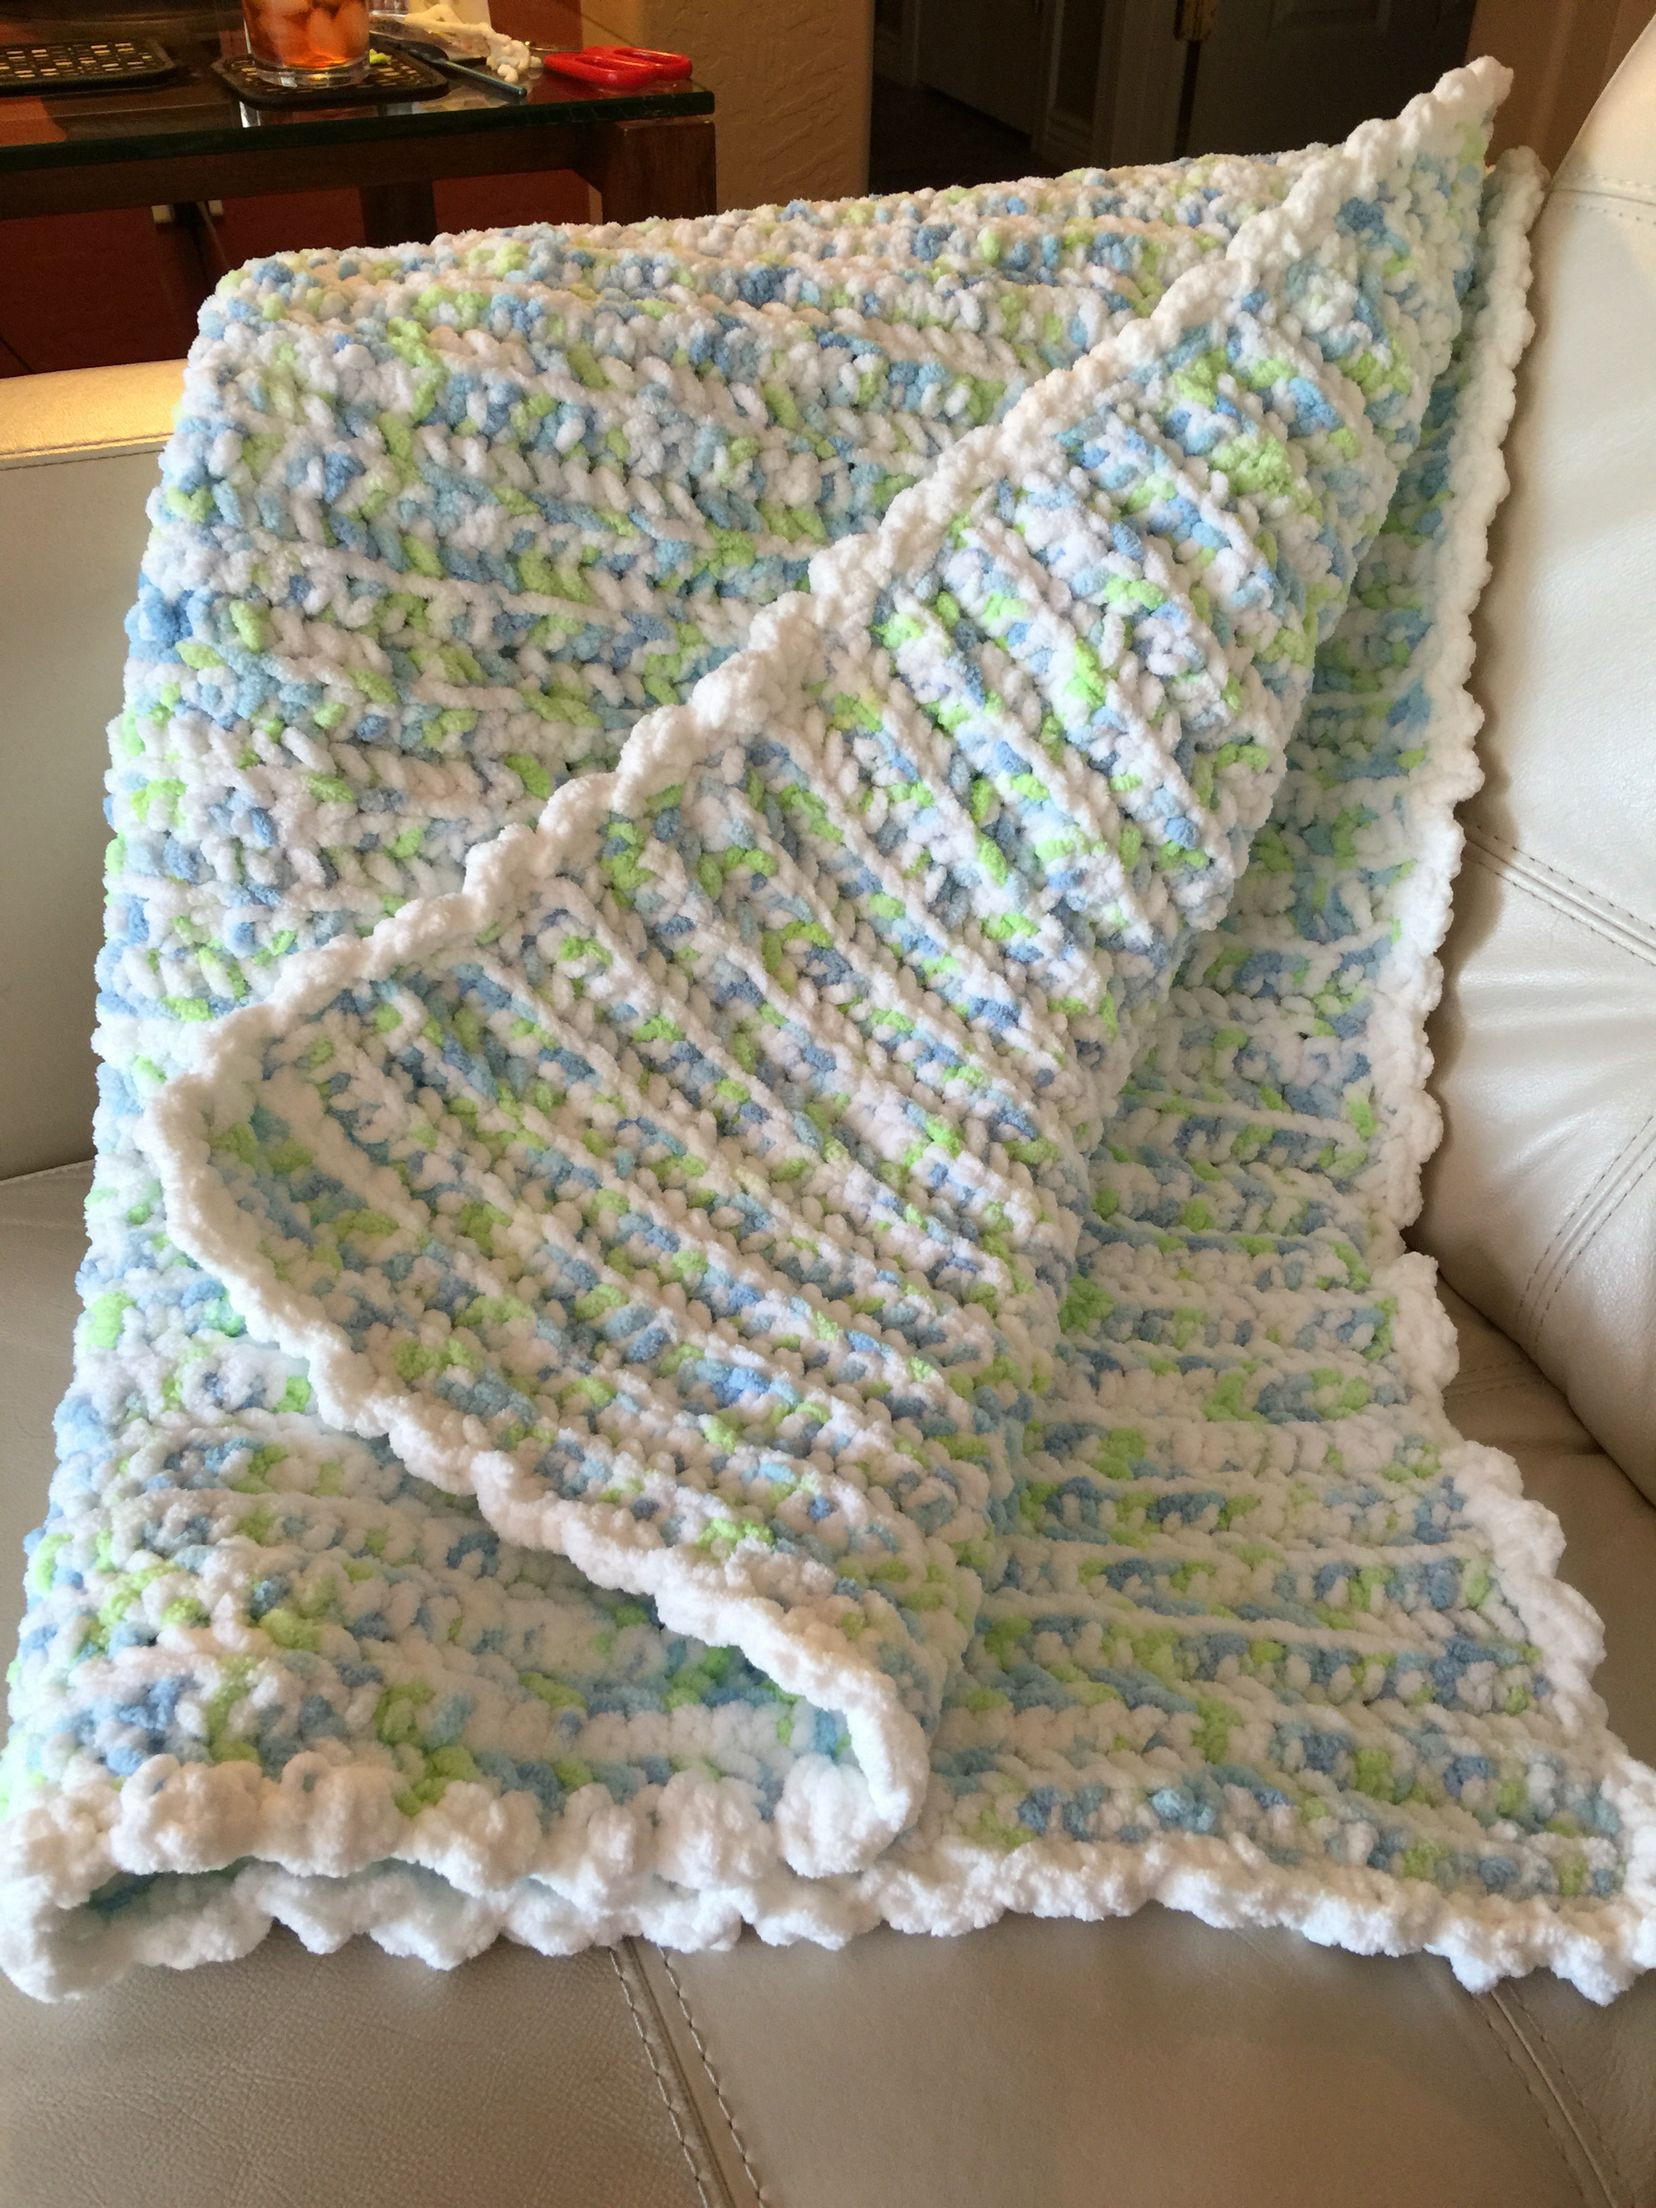 Best Of Crocheted Baby Quilt with Bernat Baby Blanket Yarn Best Yarn for Baby Blanket Crochet Of Amazing 45 Pics Best Yarn for Baby Blanket Crochet